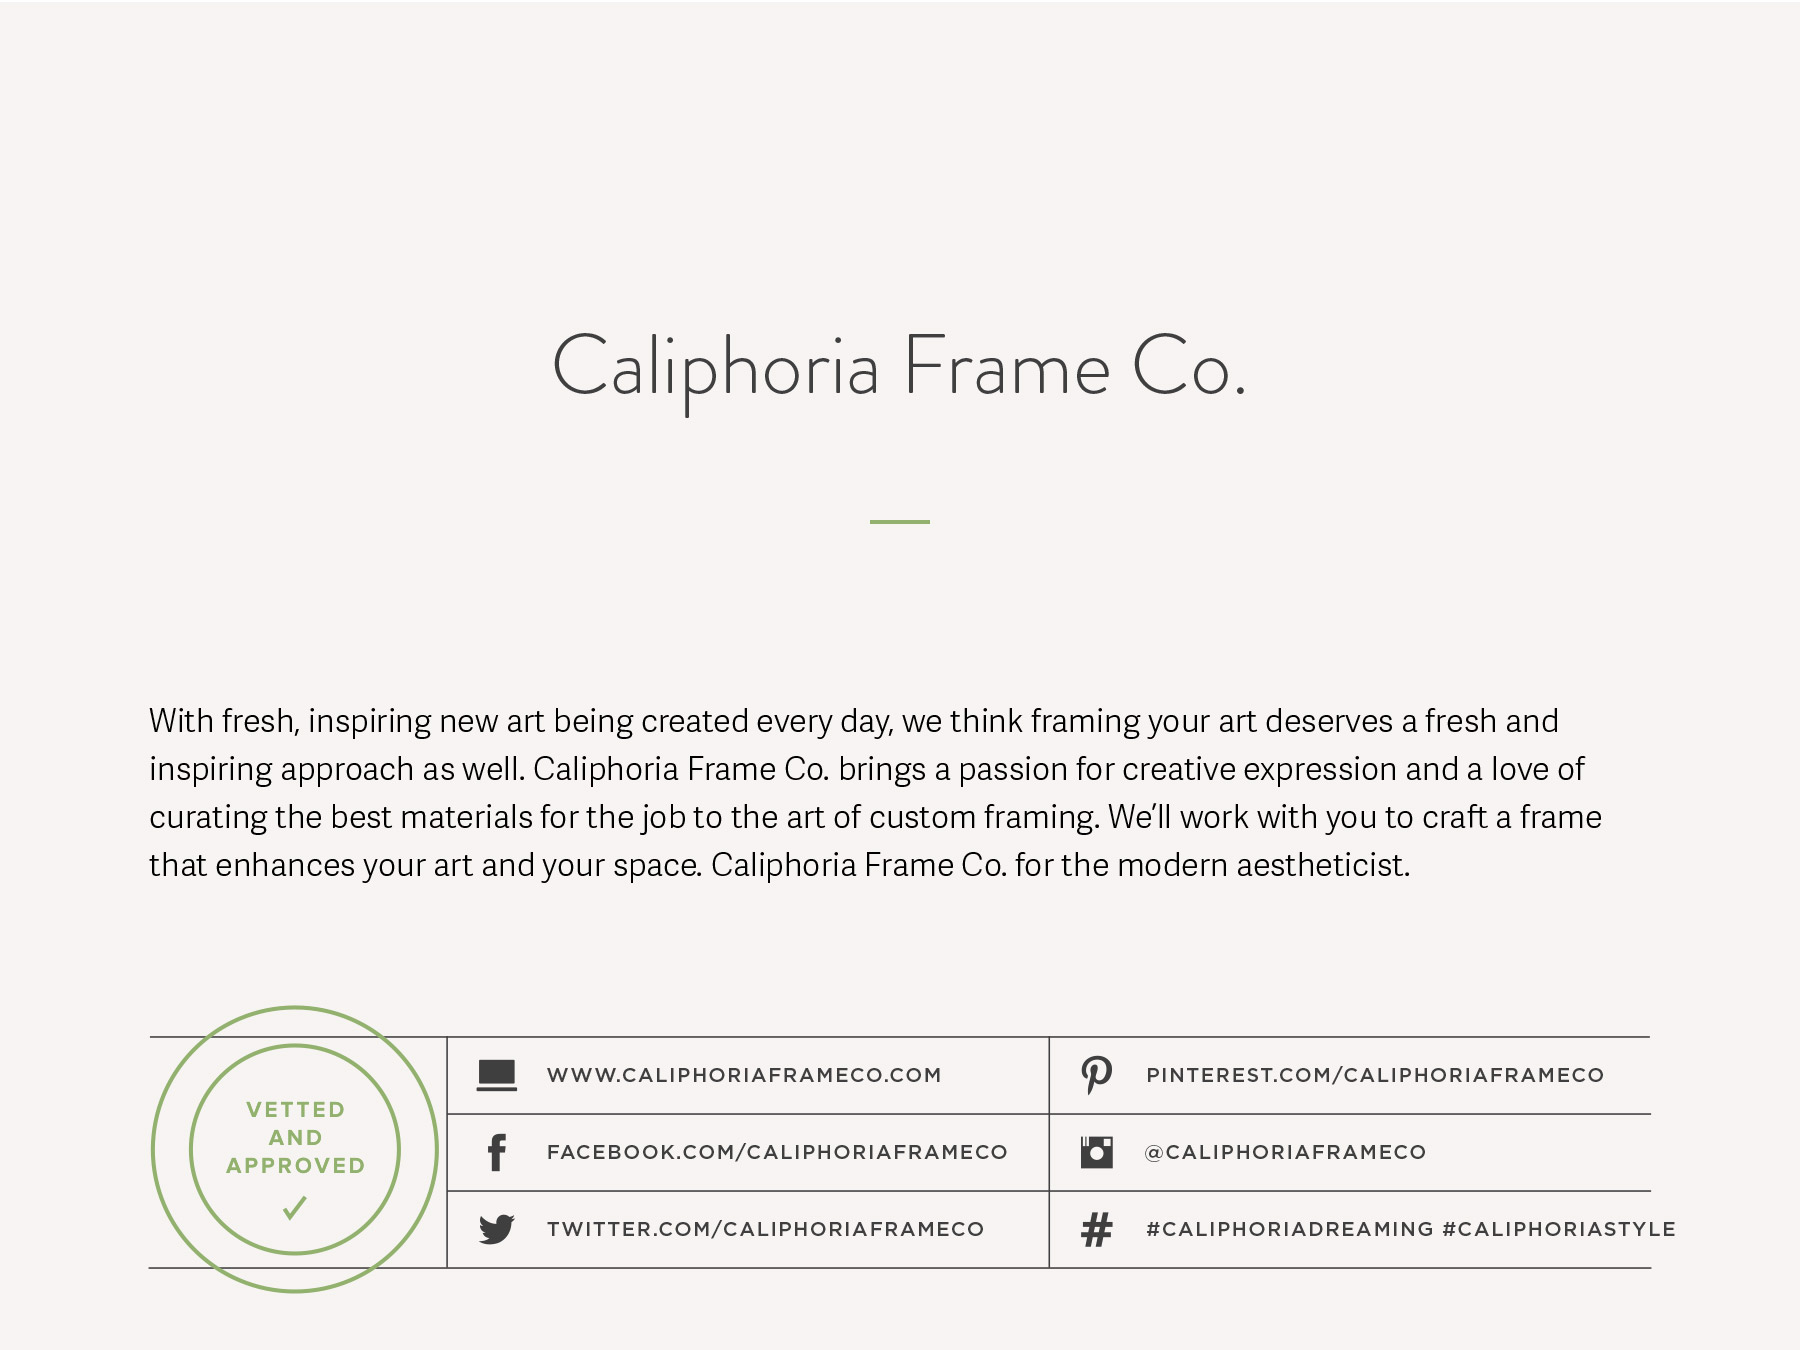 Small business naming for a custom frame and display design studio with a modern, customer-centric approach